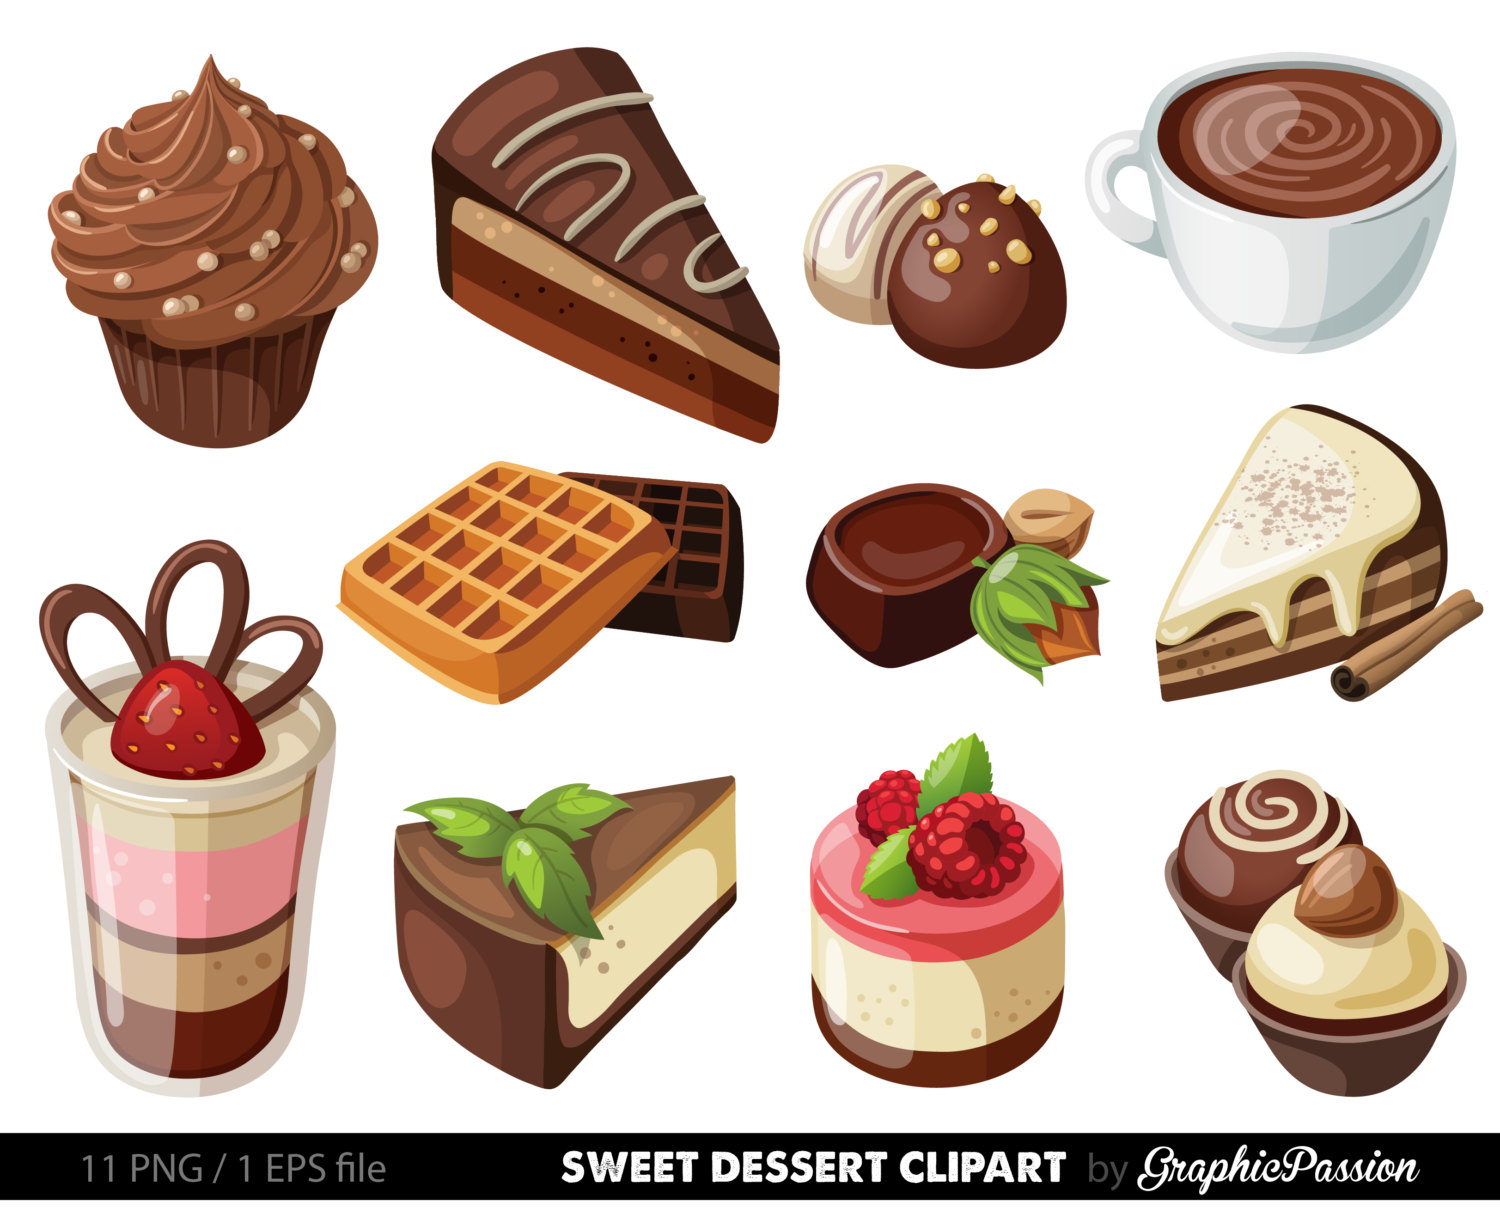 Free dessert clipart images svg royalty free stock Free Dessert Food Cliparts, Download Free Clip Art, Free Clip Art on ... svg royalty free stock